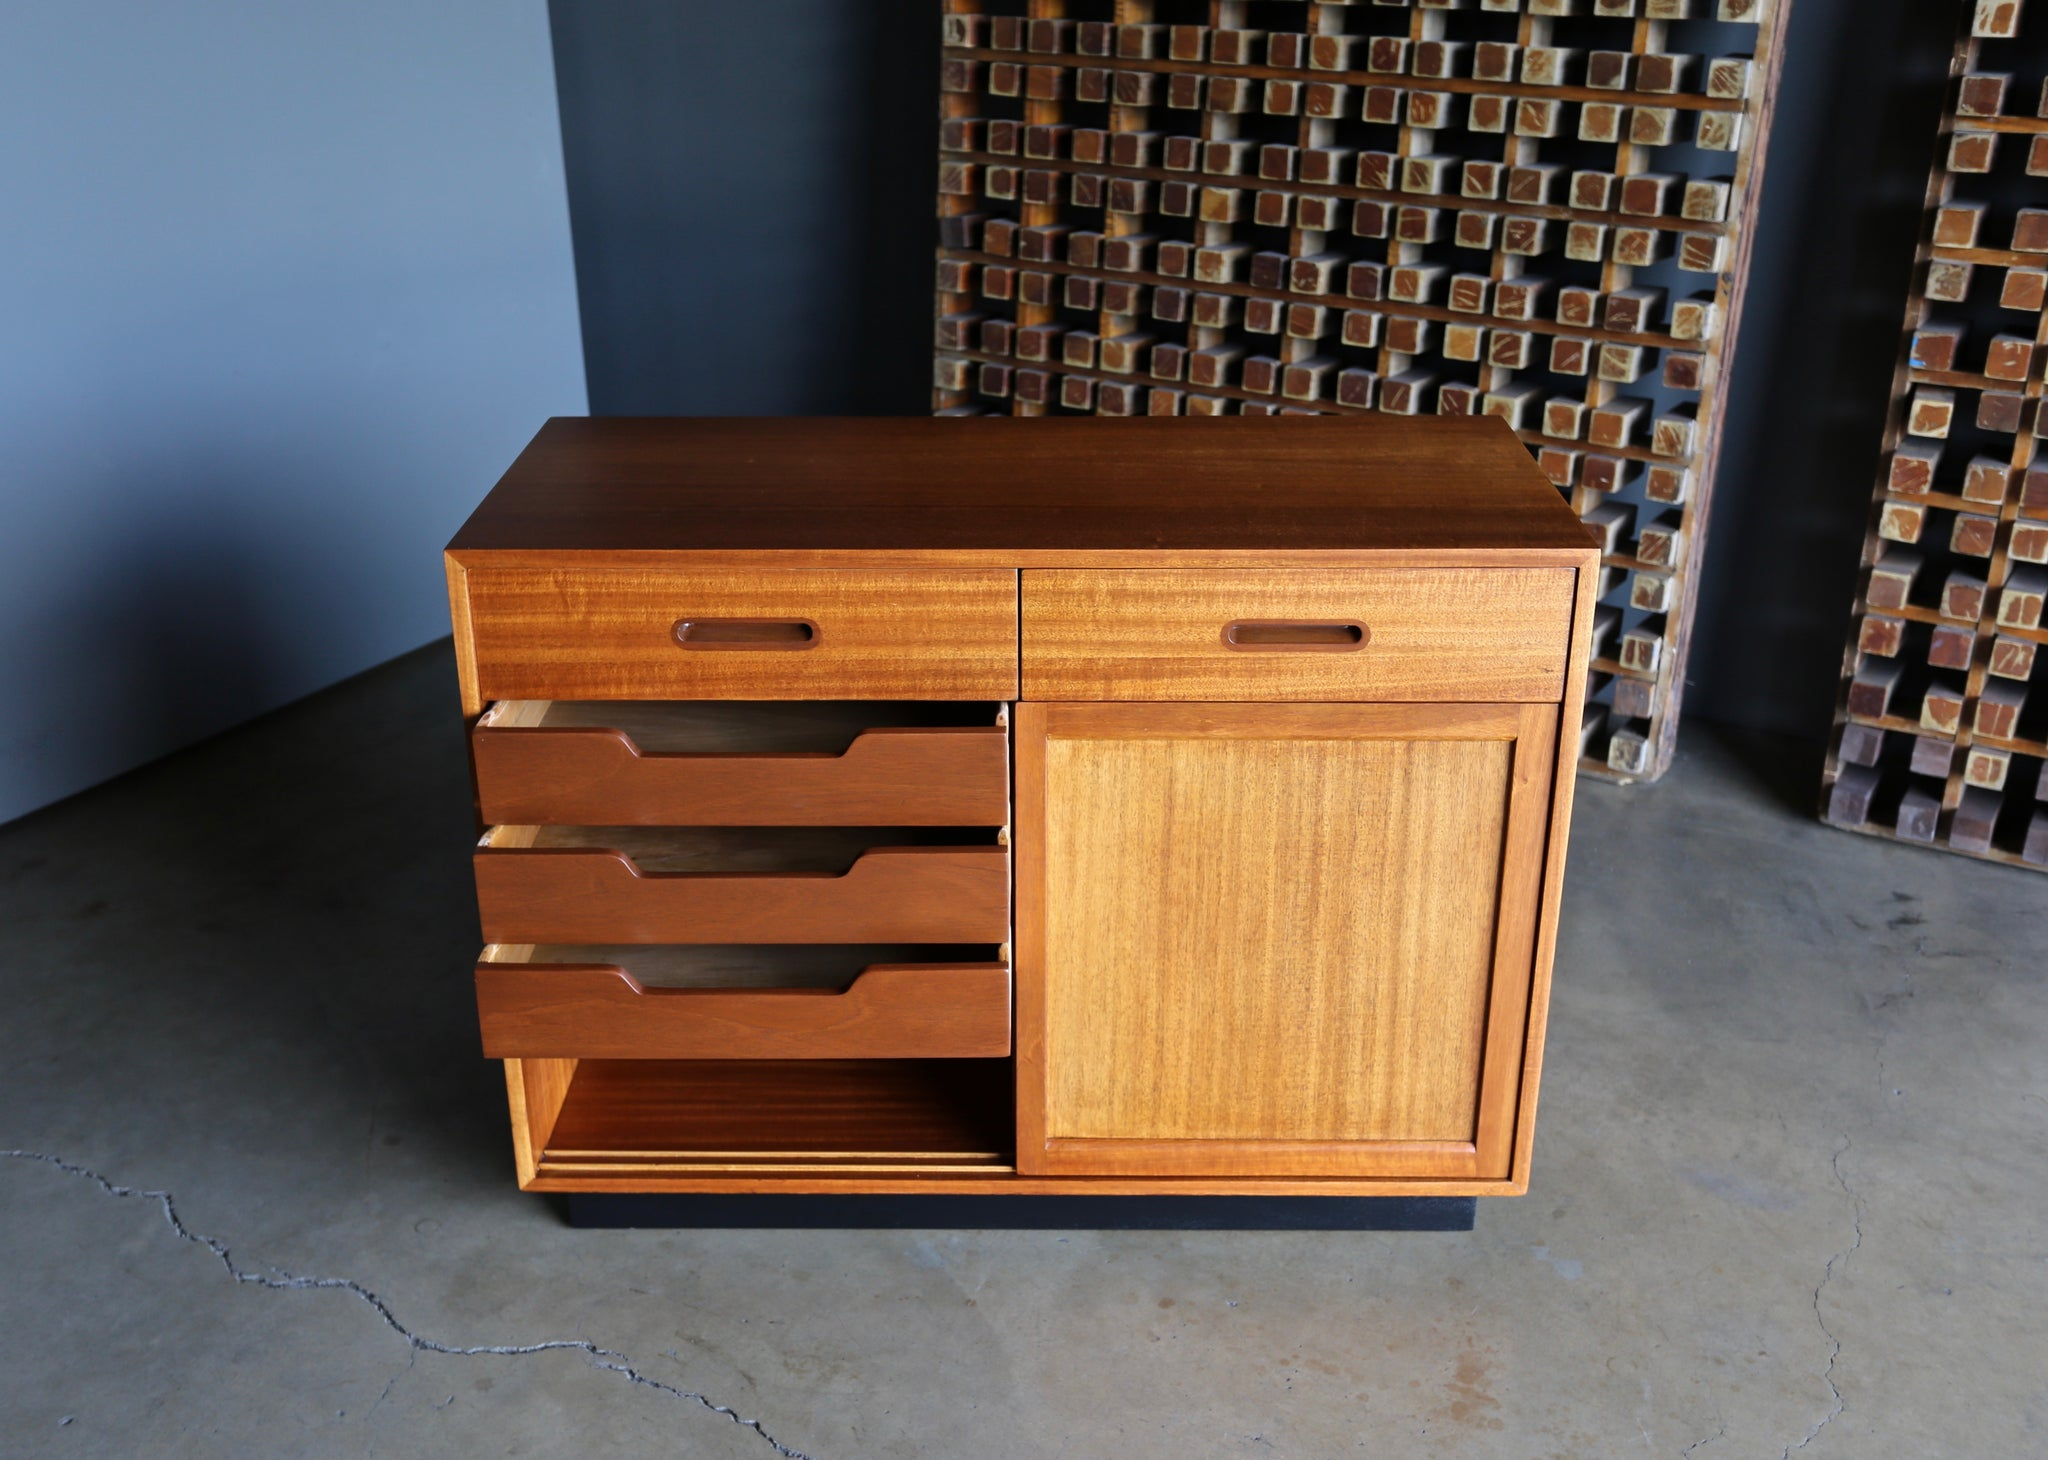 = SOLD = Edward Wormley Cabinet for Dunbar, circa 1950